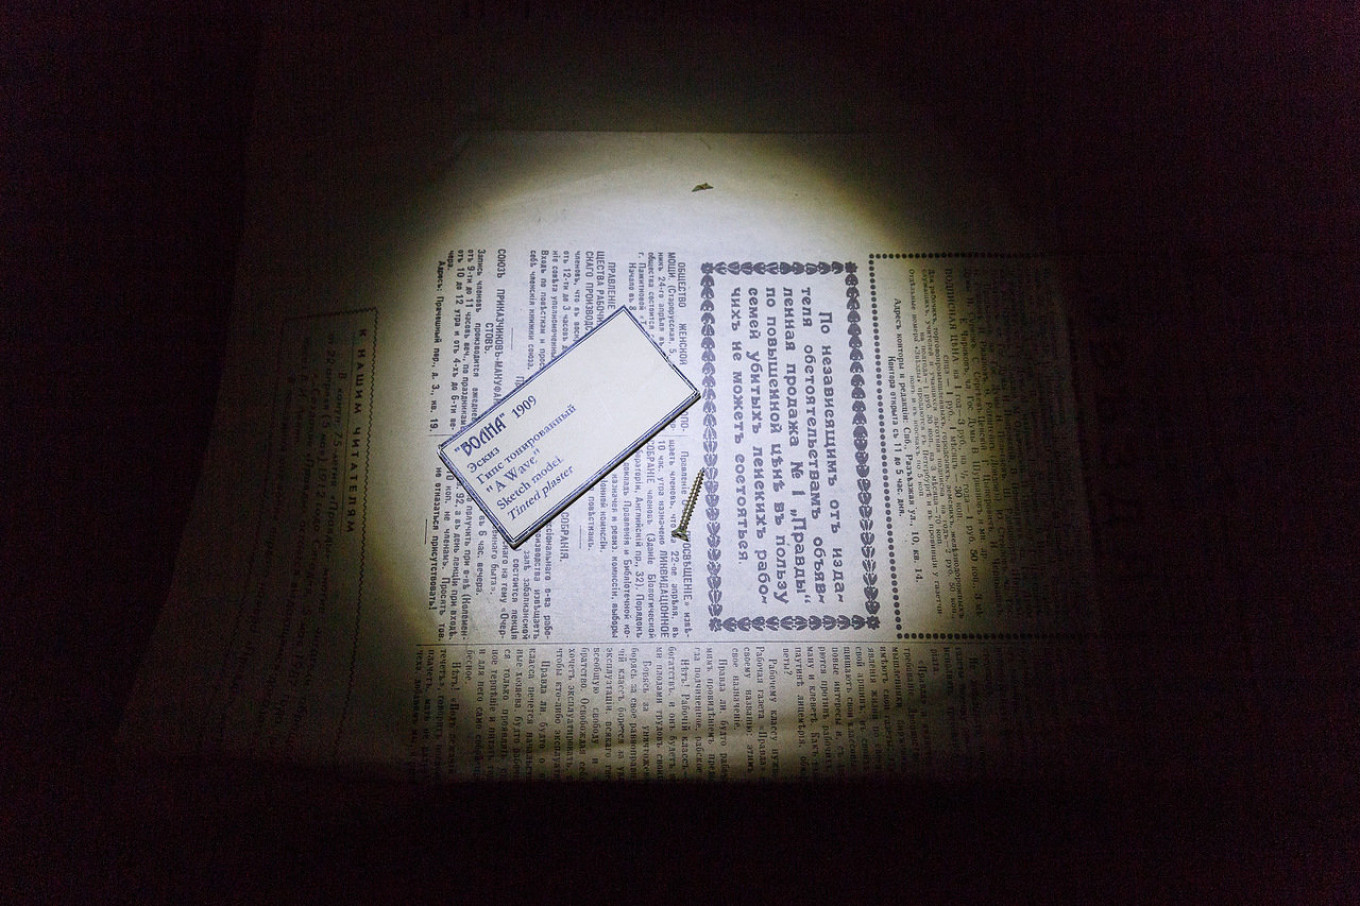 """In the first phase of the exhibition, """"Ruins,"""" visitors are submerged in darkness as they explore artifacts with flashlights.  Anastasiya Zamyatina / Tretyakov Gallery"""